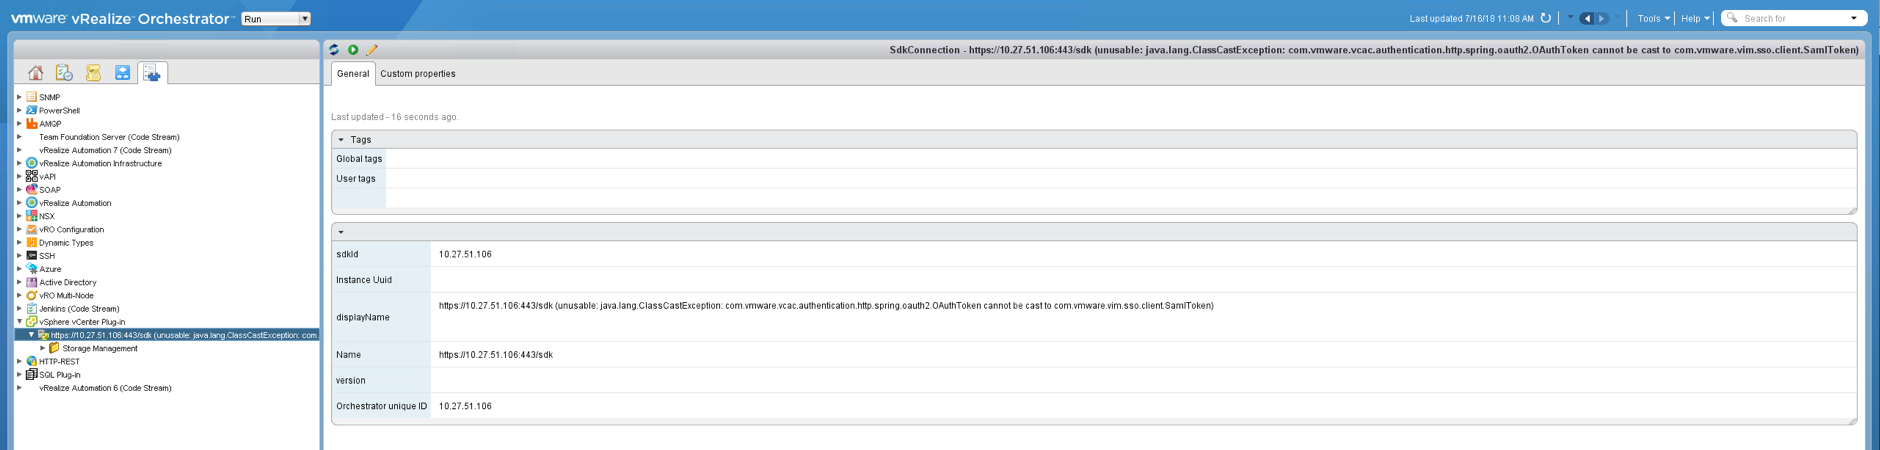 Workflow issues when vCenter instance not correctly added to vRO